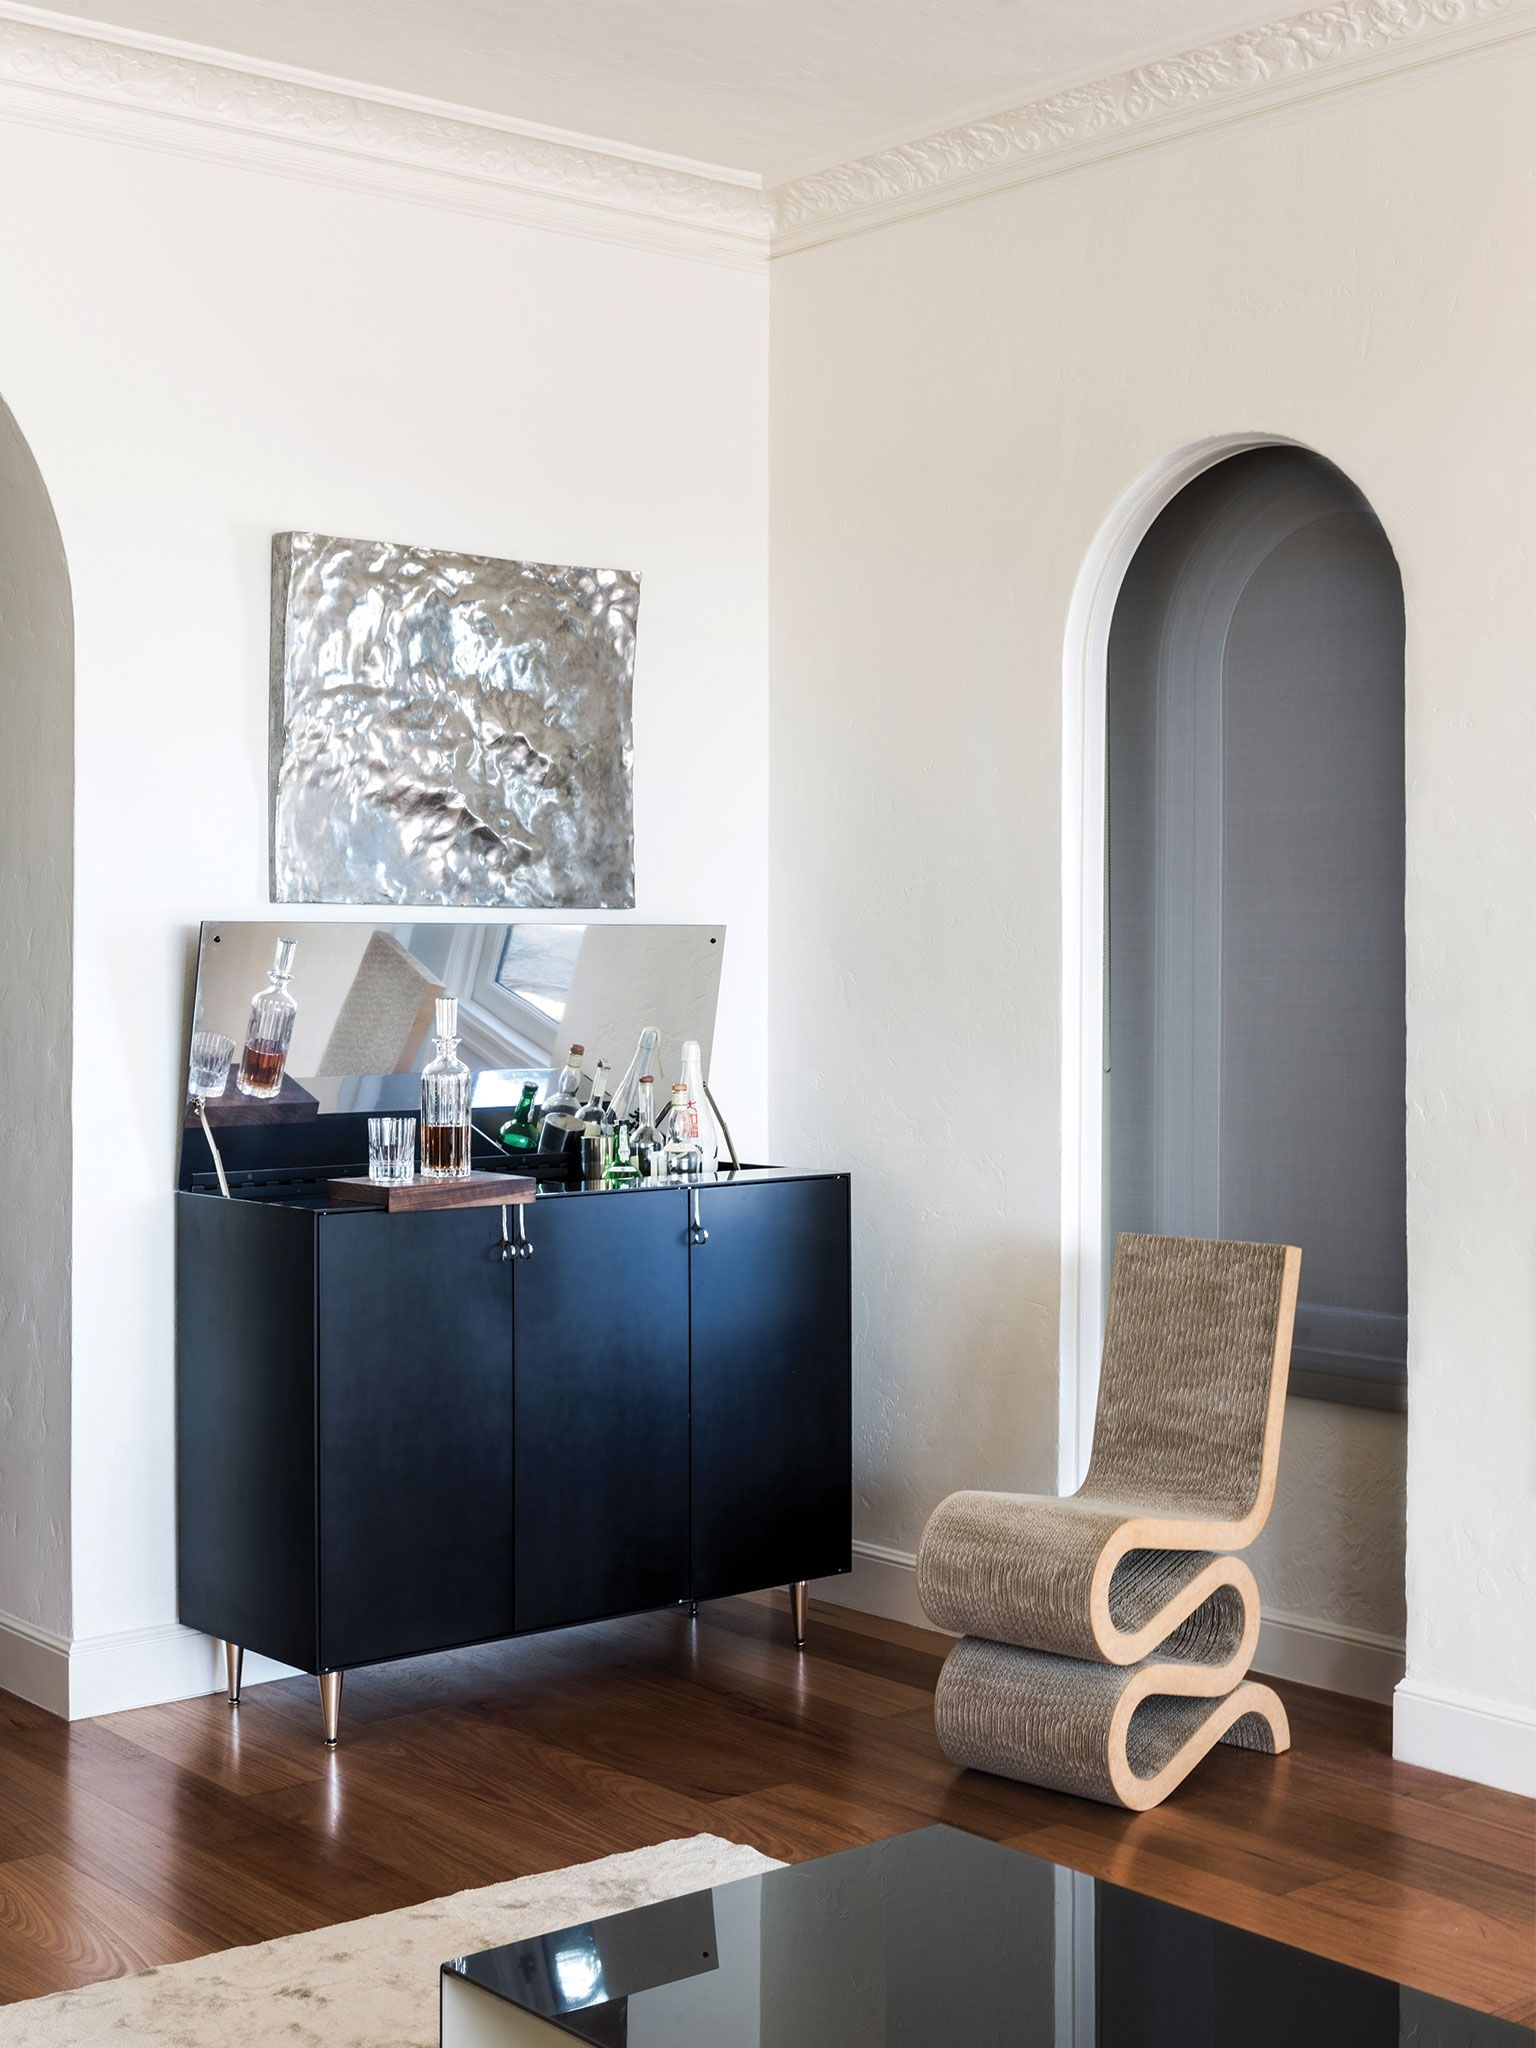 15 Stylish And Clever Living Room Storage Ideas 40+ Alcove Storage Living Room Inspirations